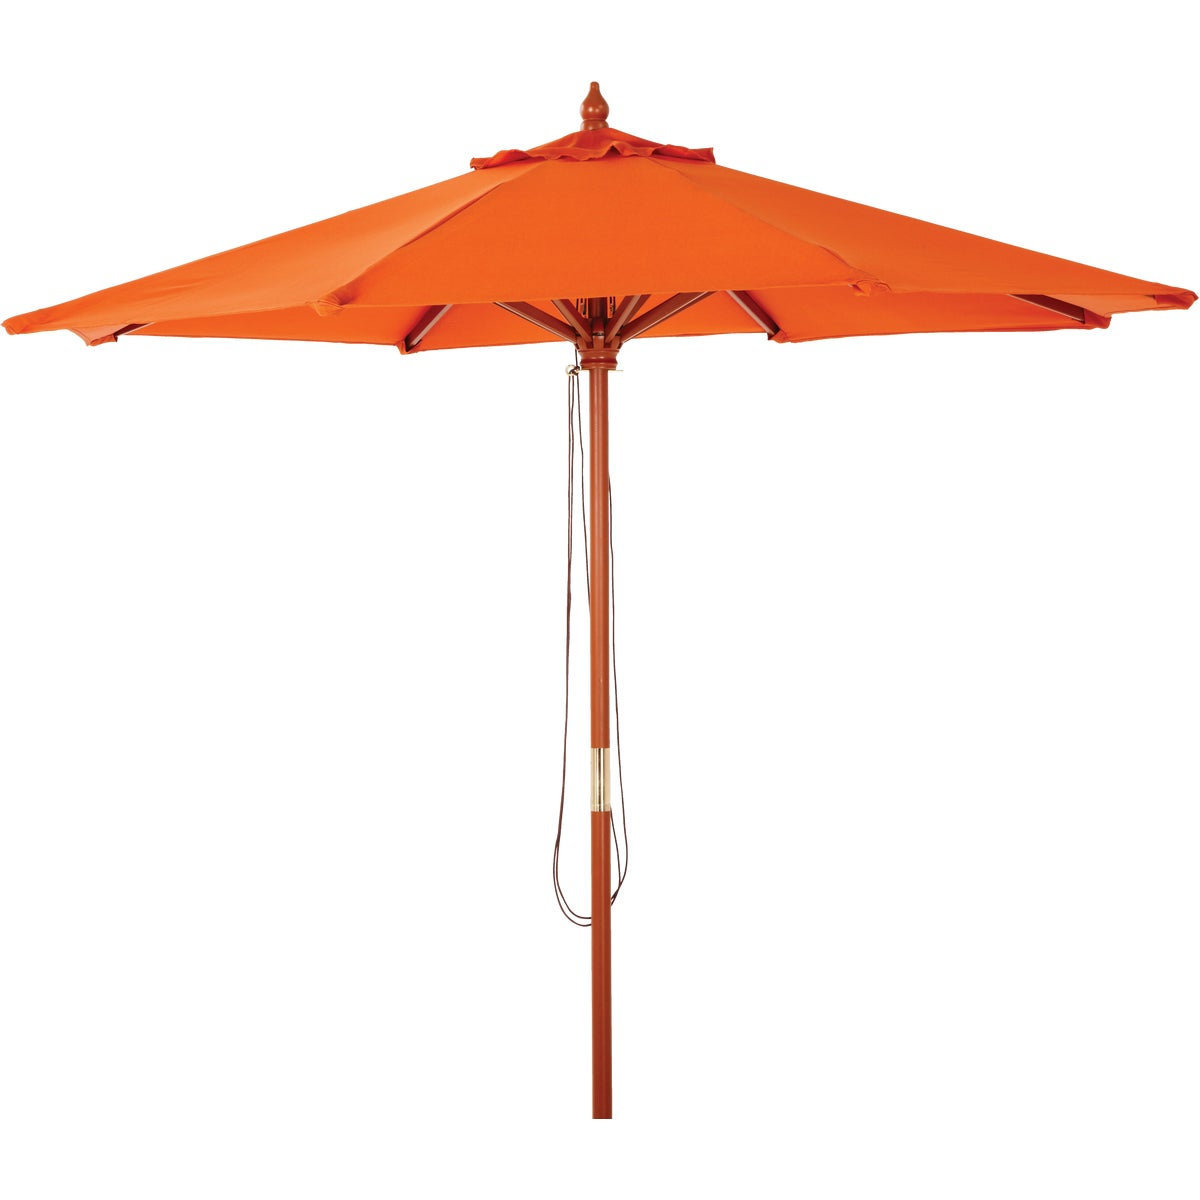 7.5' MKT SPICE UMBRELLA